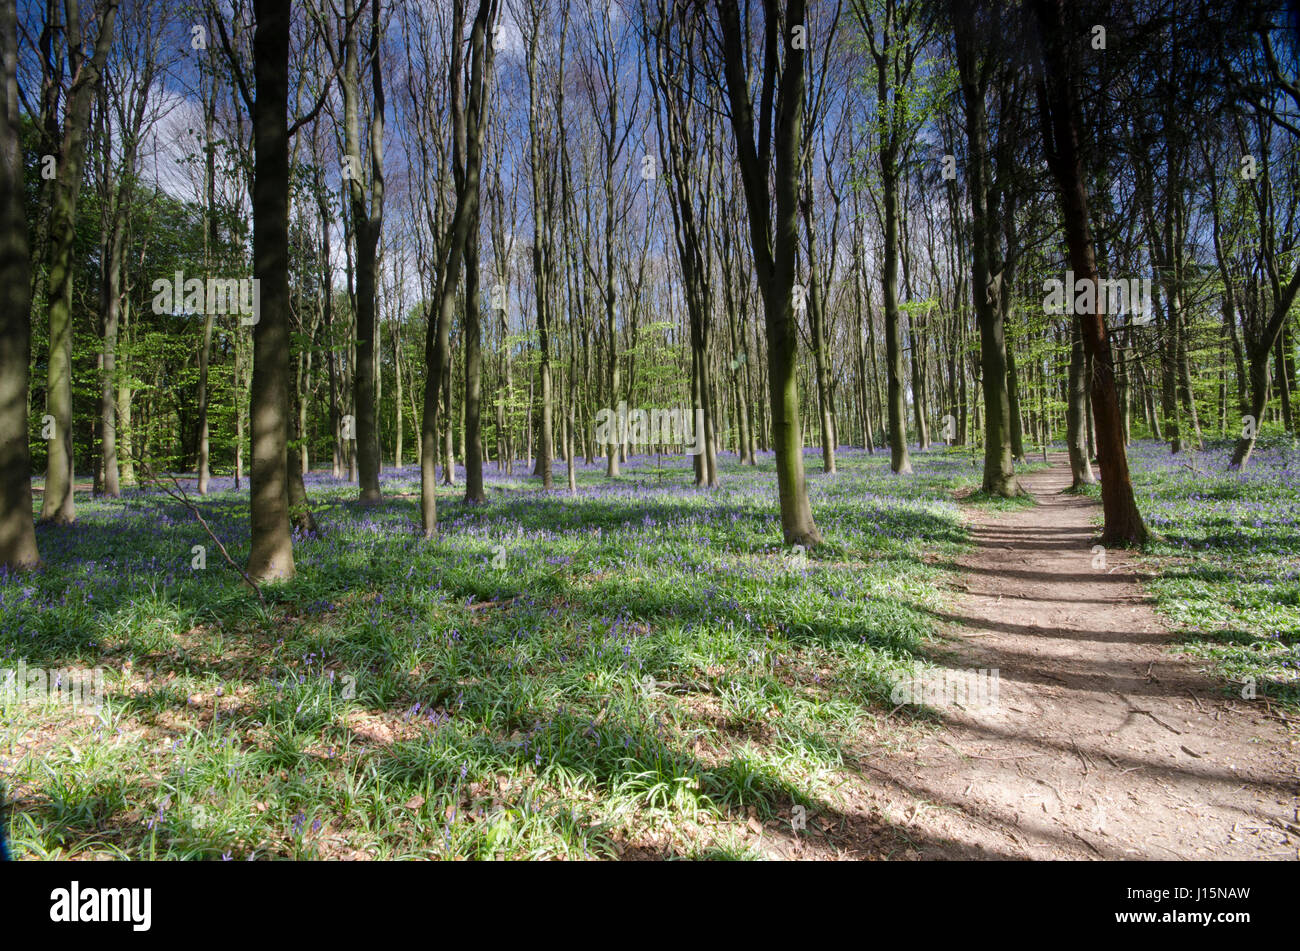 woodlands in the spring showing fine display of Bluebells this time of the year. - Stock Image